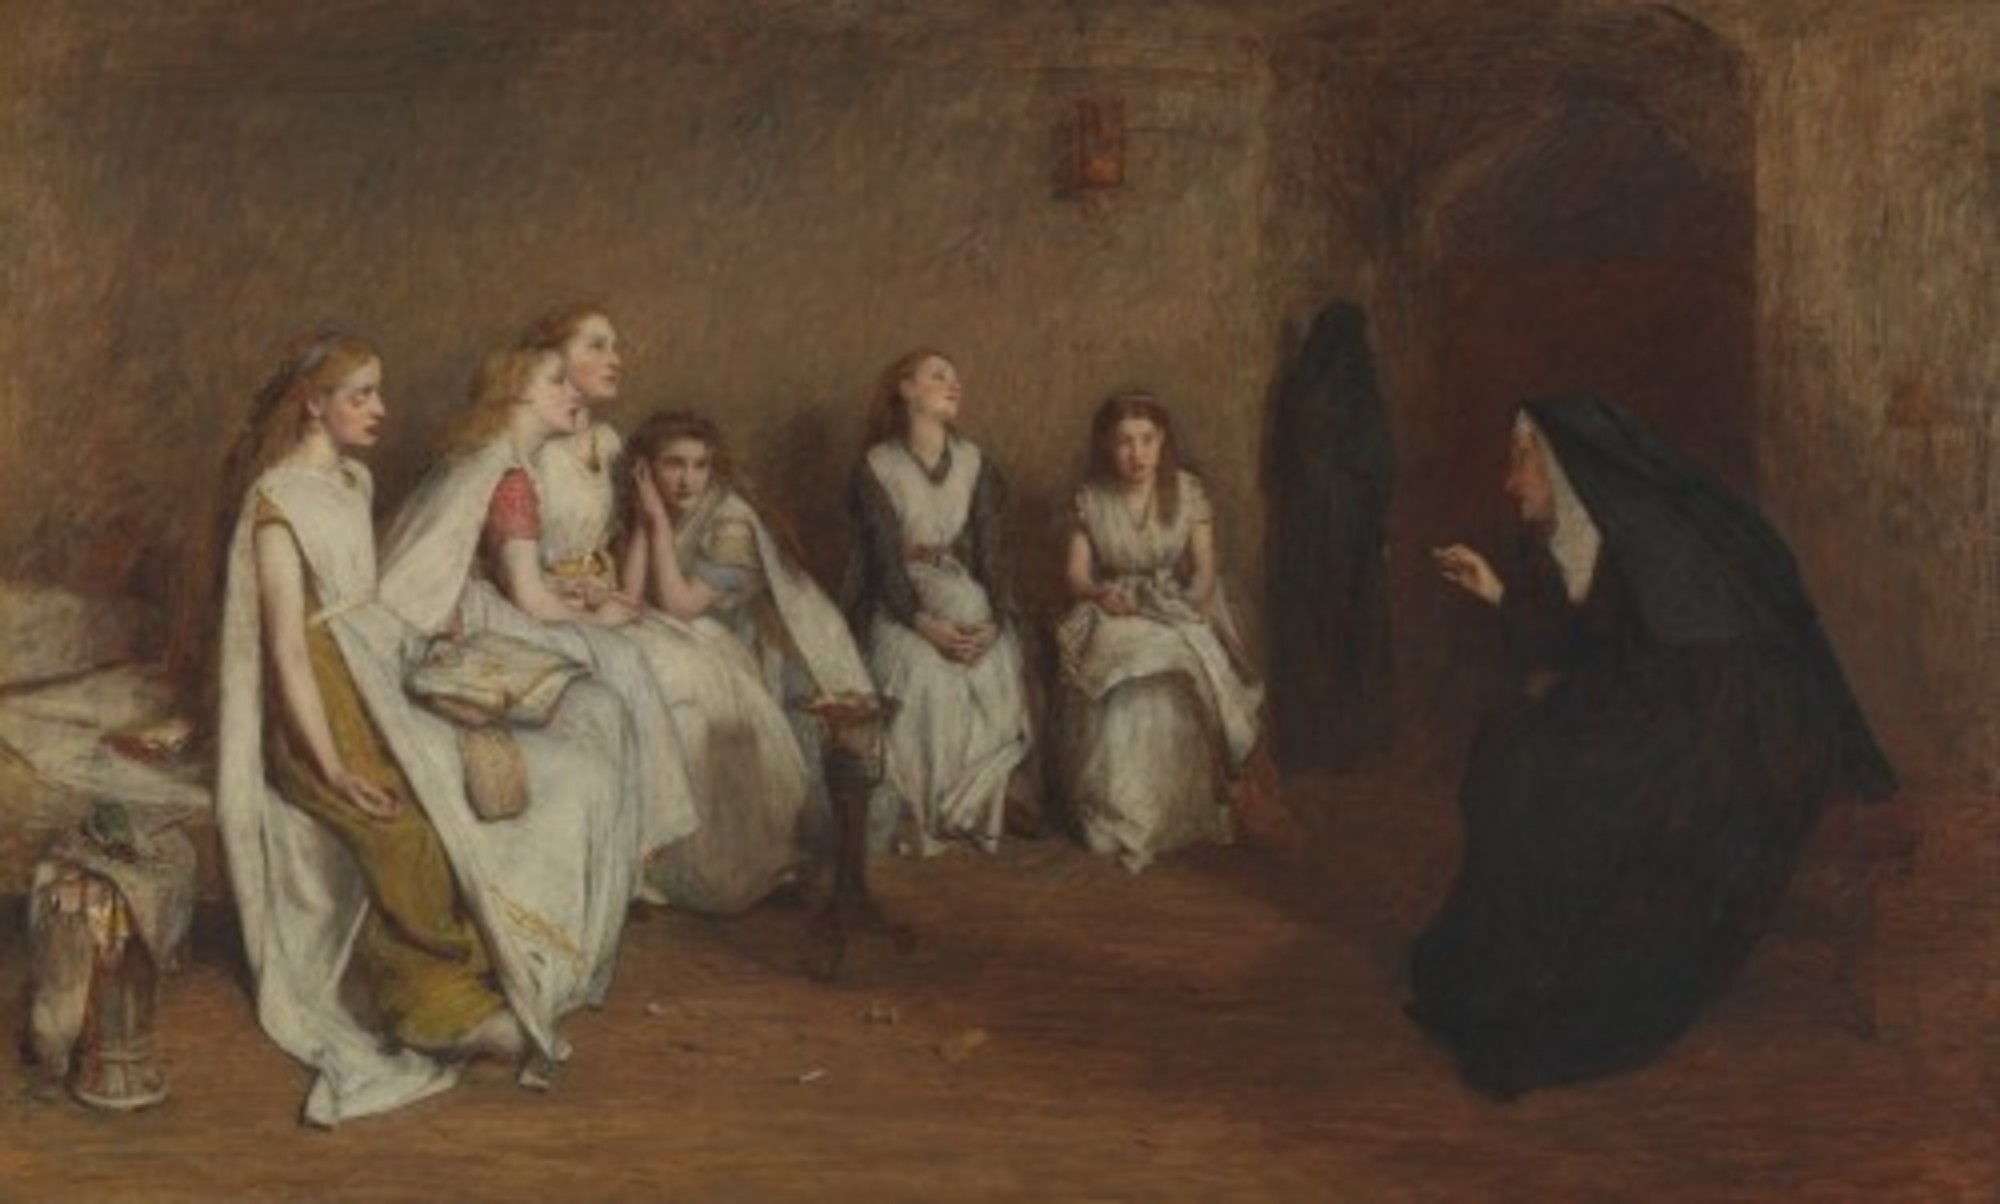 William-Quiller-Orchardson---The-Story-of-a-Life---Google-Art-Project.jpg